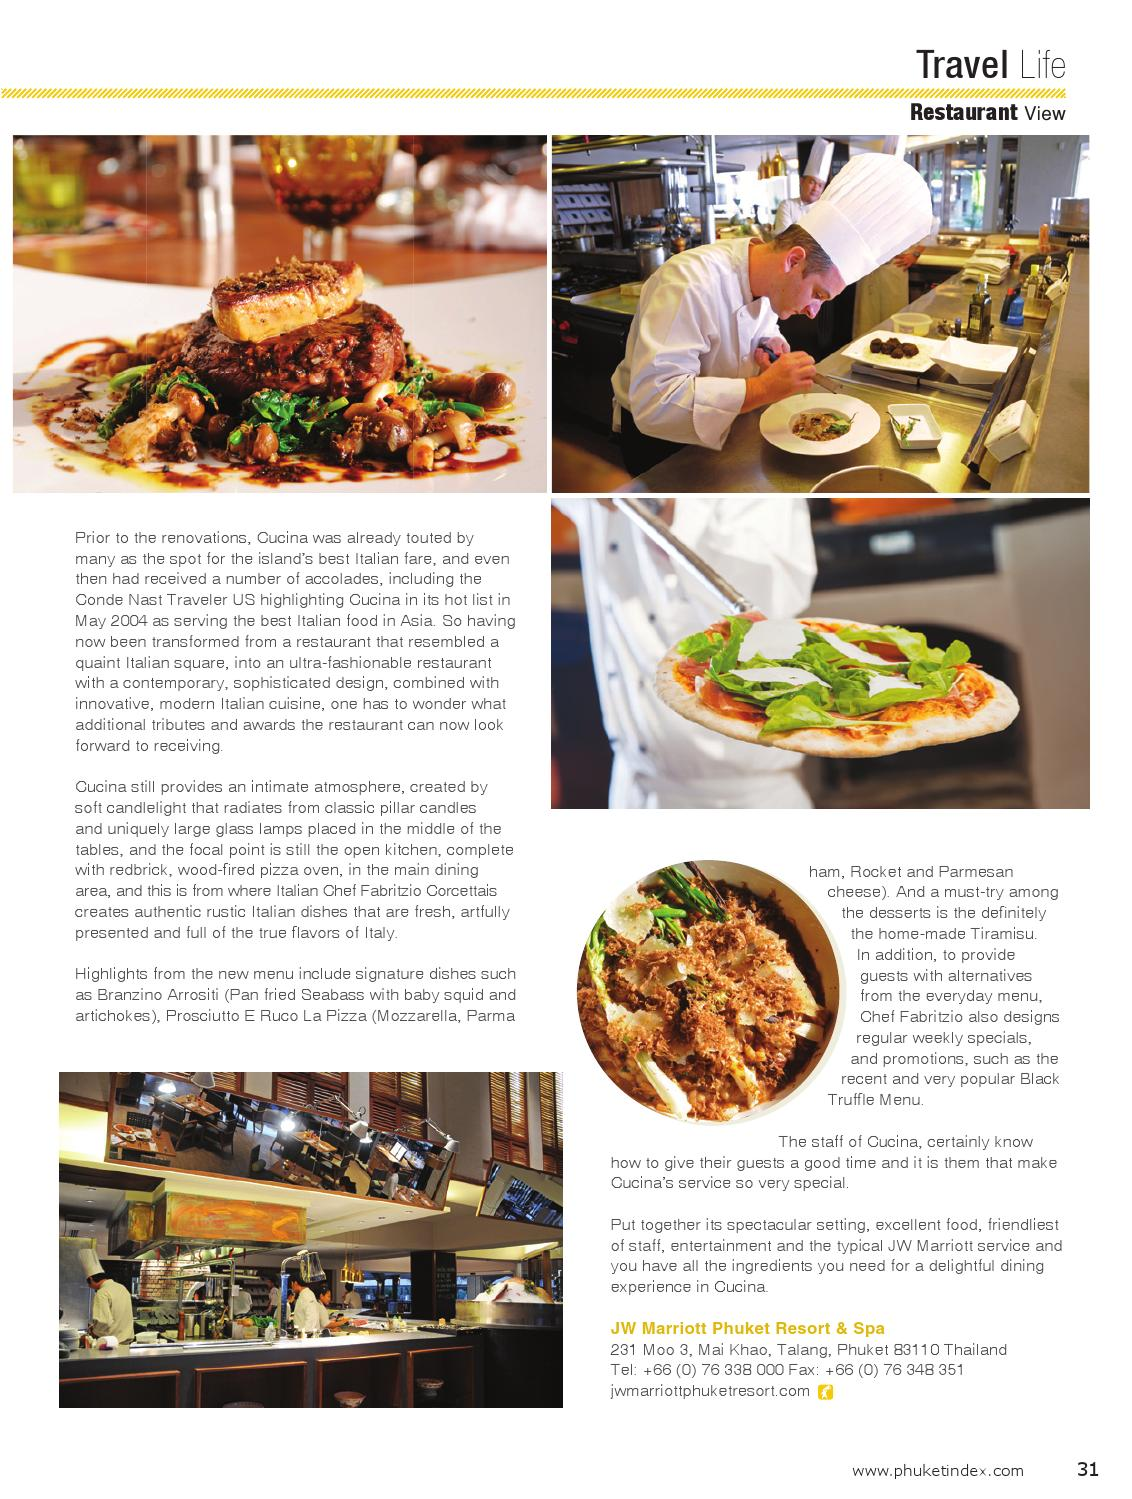 Jw Marriott Phuket Cucina Restaurant Phuketindex Vol 24 By Guide Vision Limited Issuu